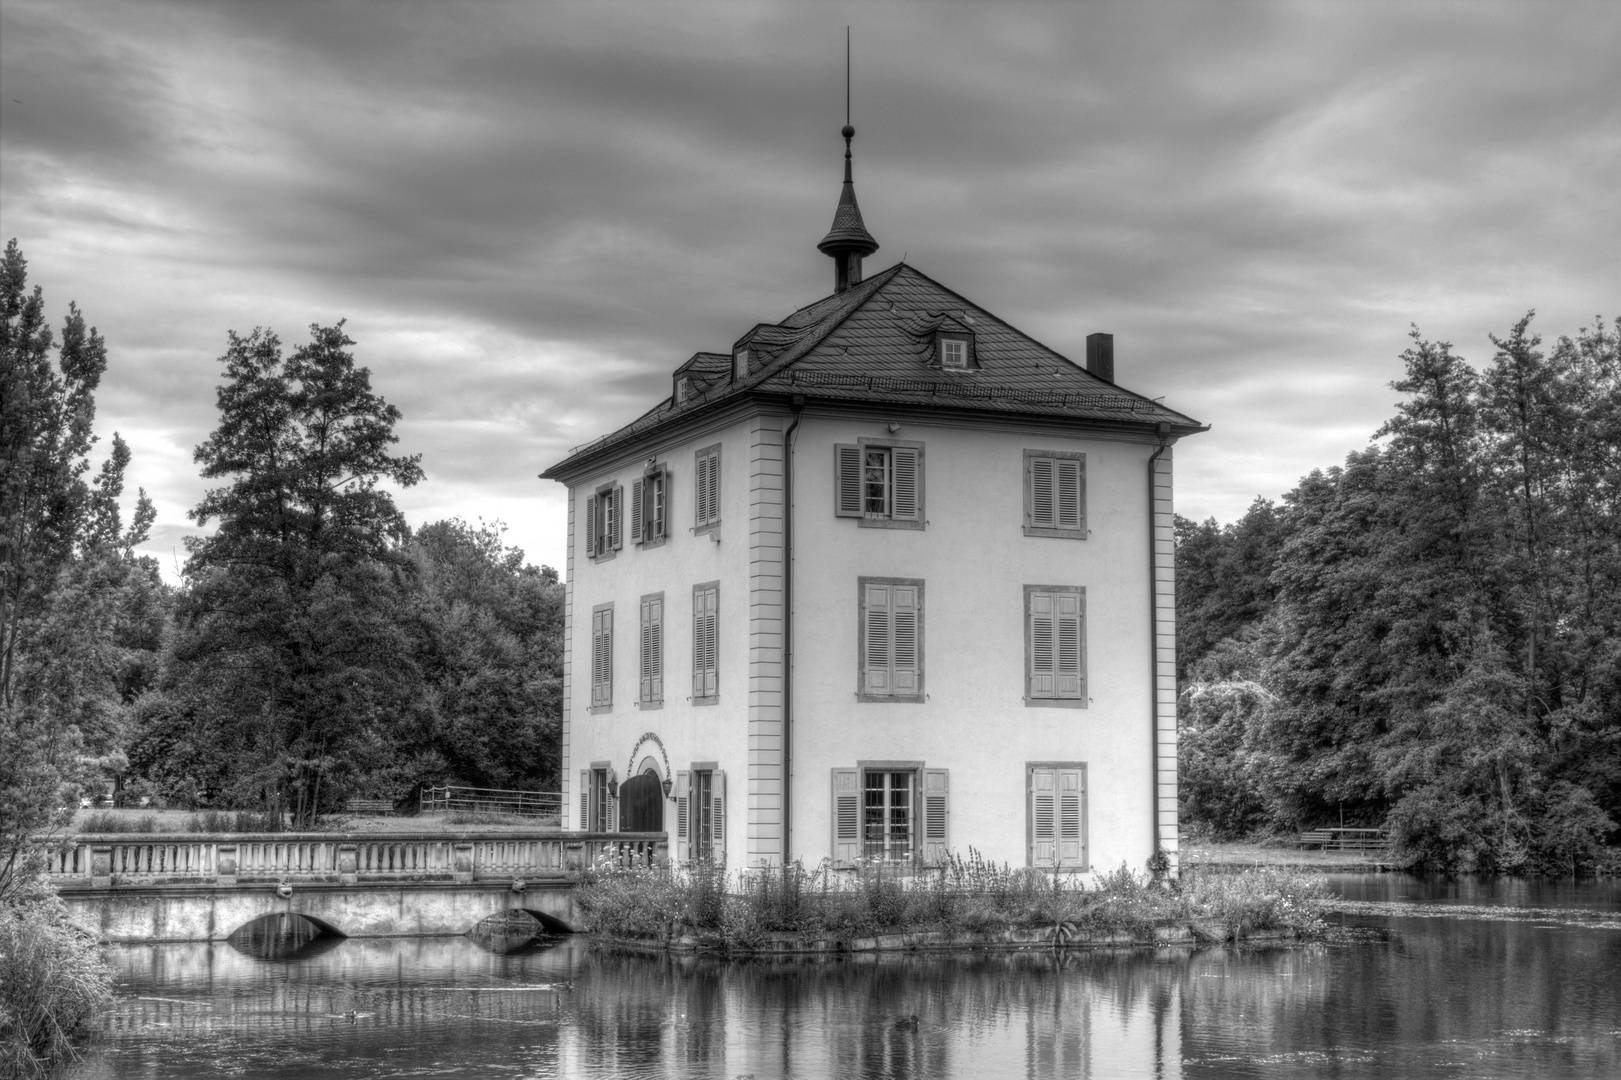 HDR Trappensee / Kunsthaus